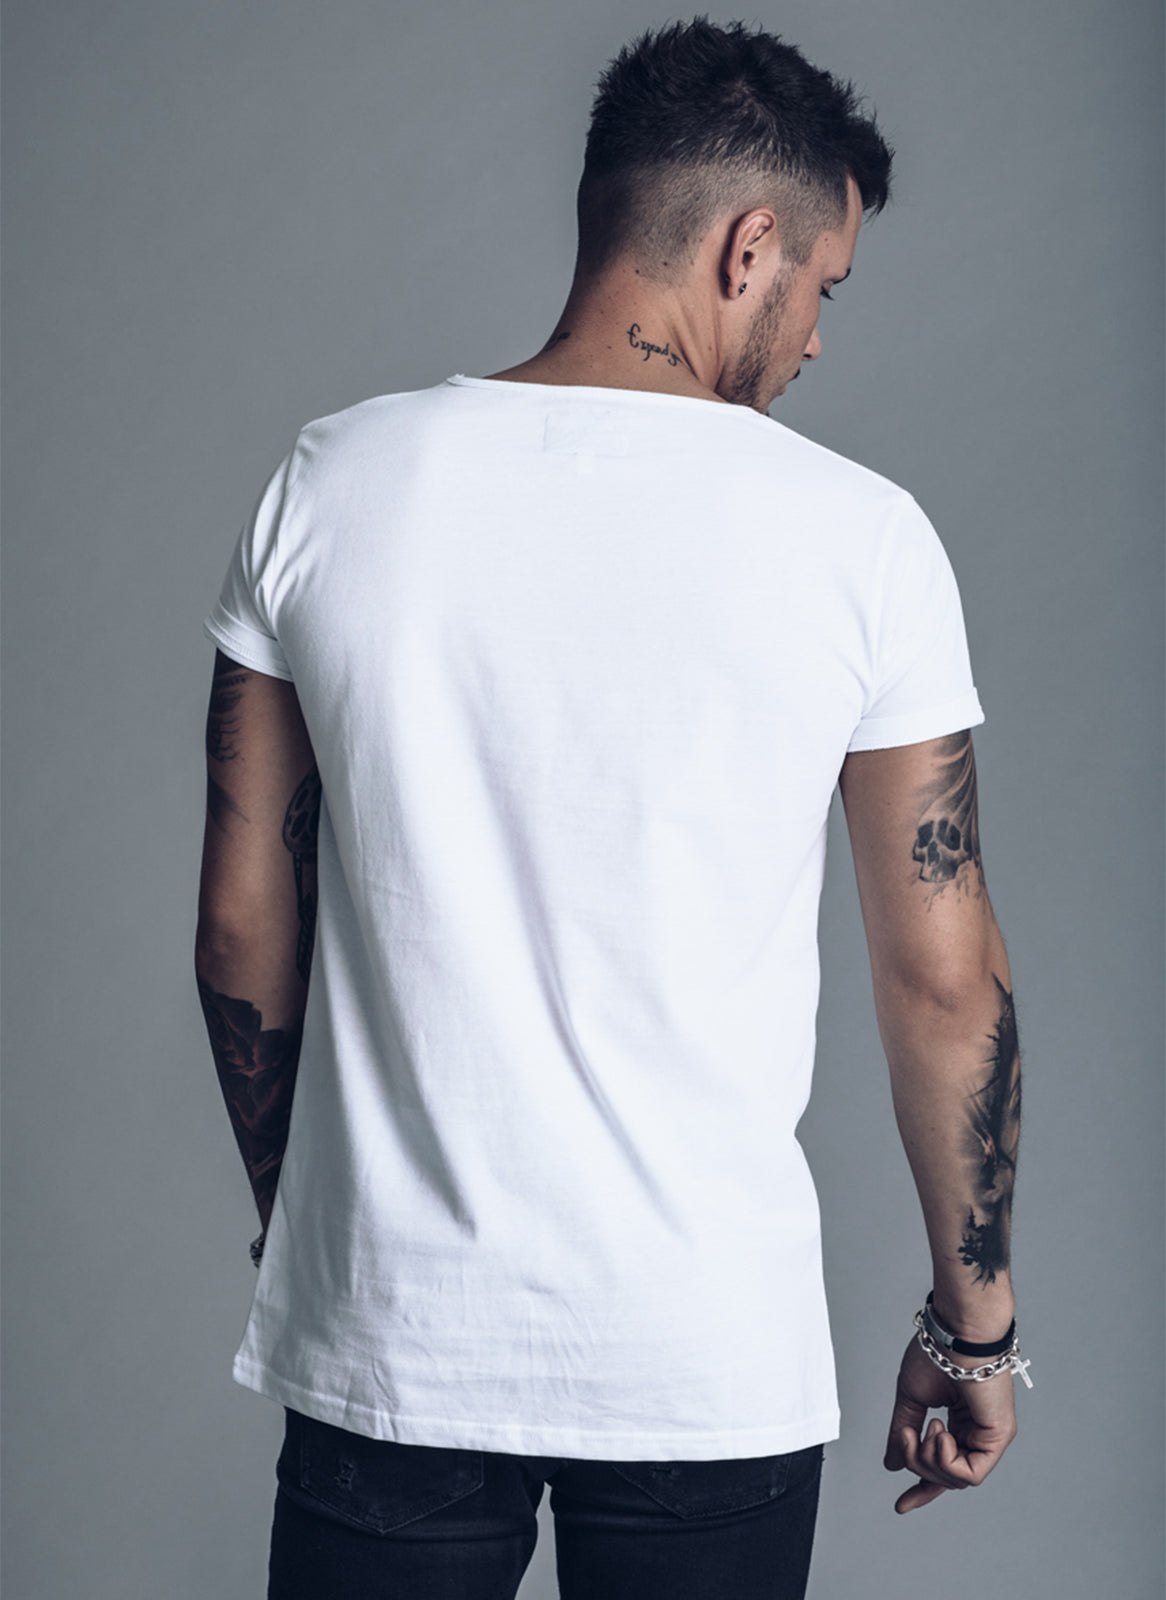 We Love Techno Logo - White T-shirt - We Love Techno